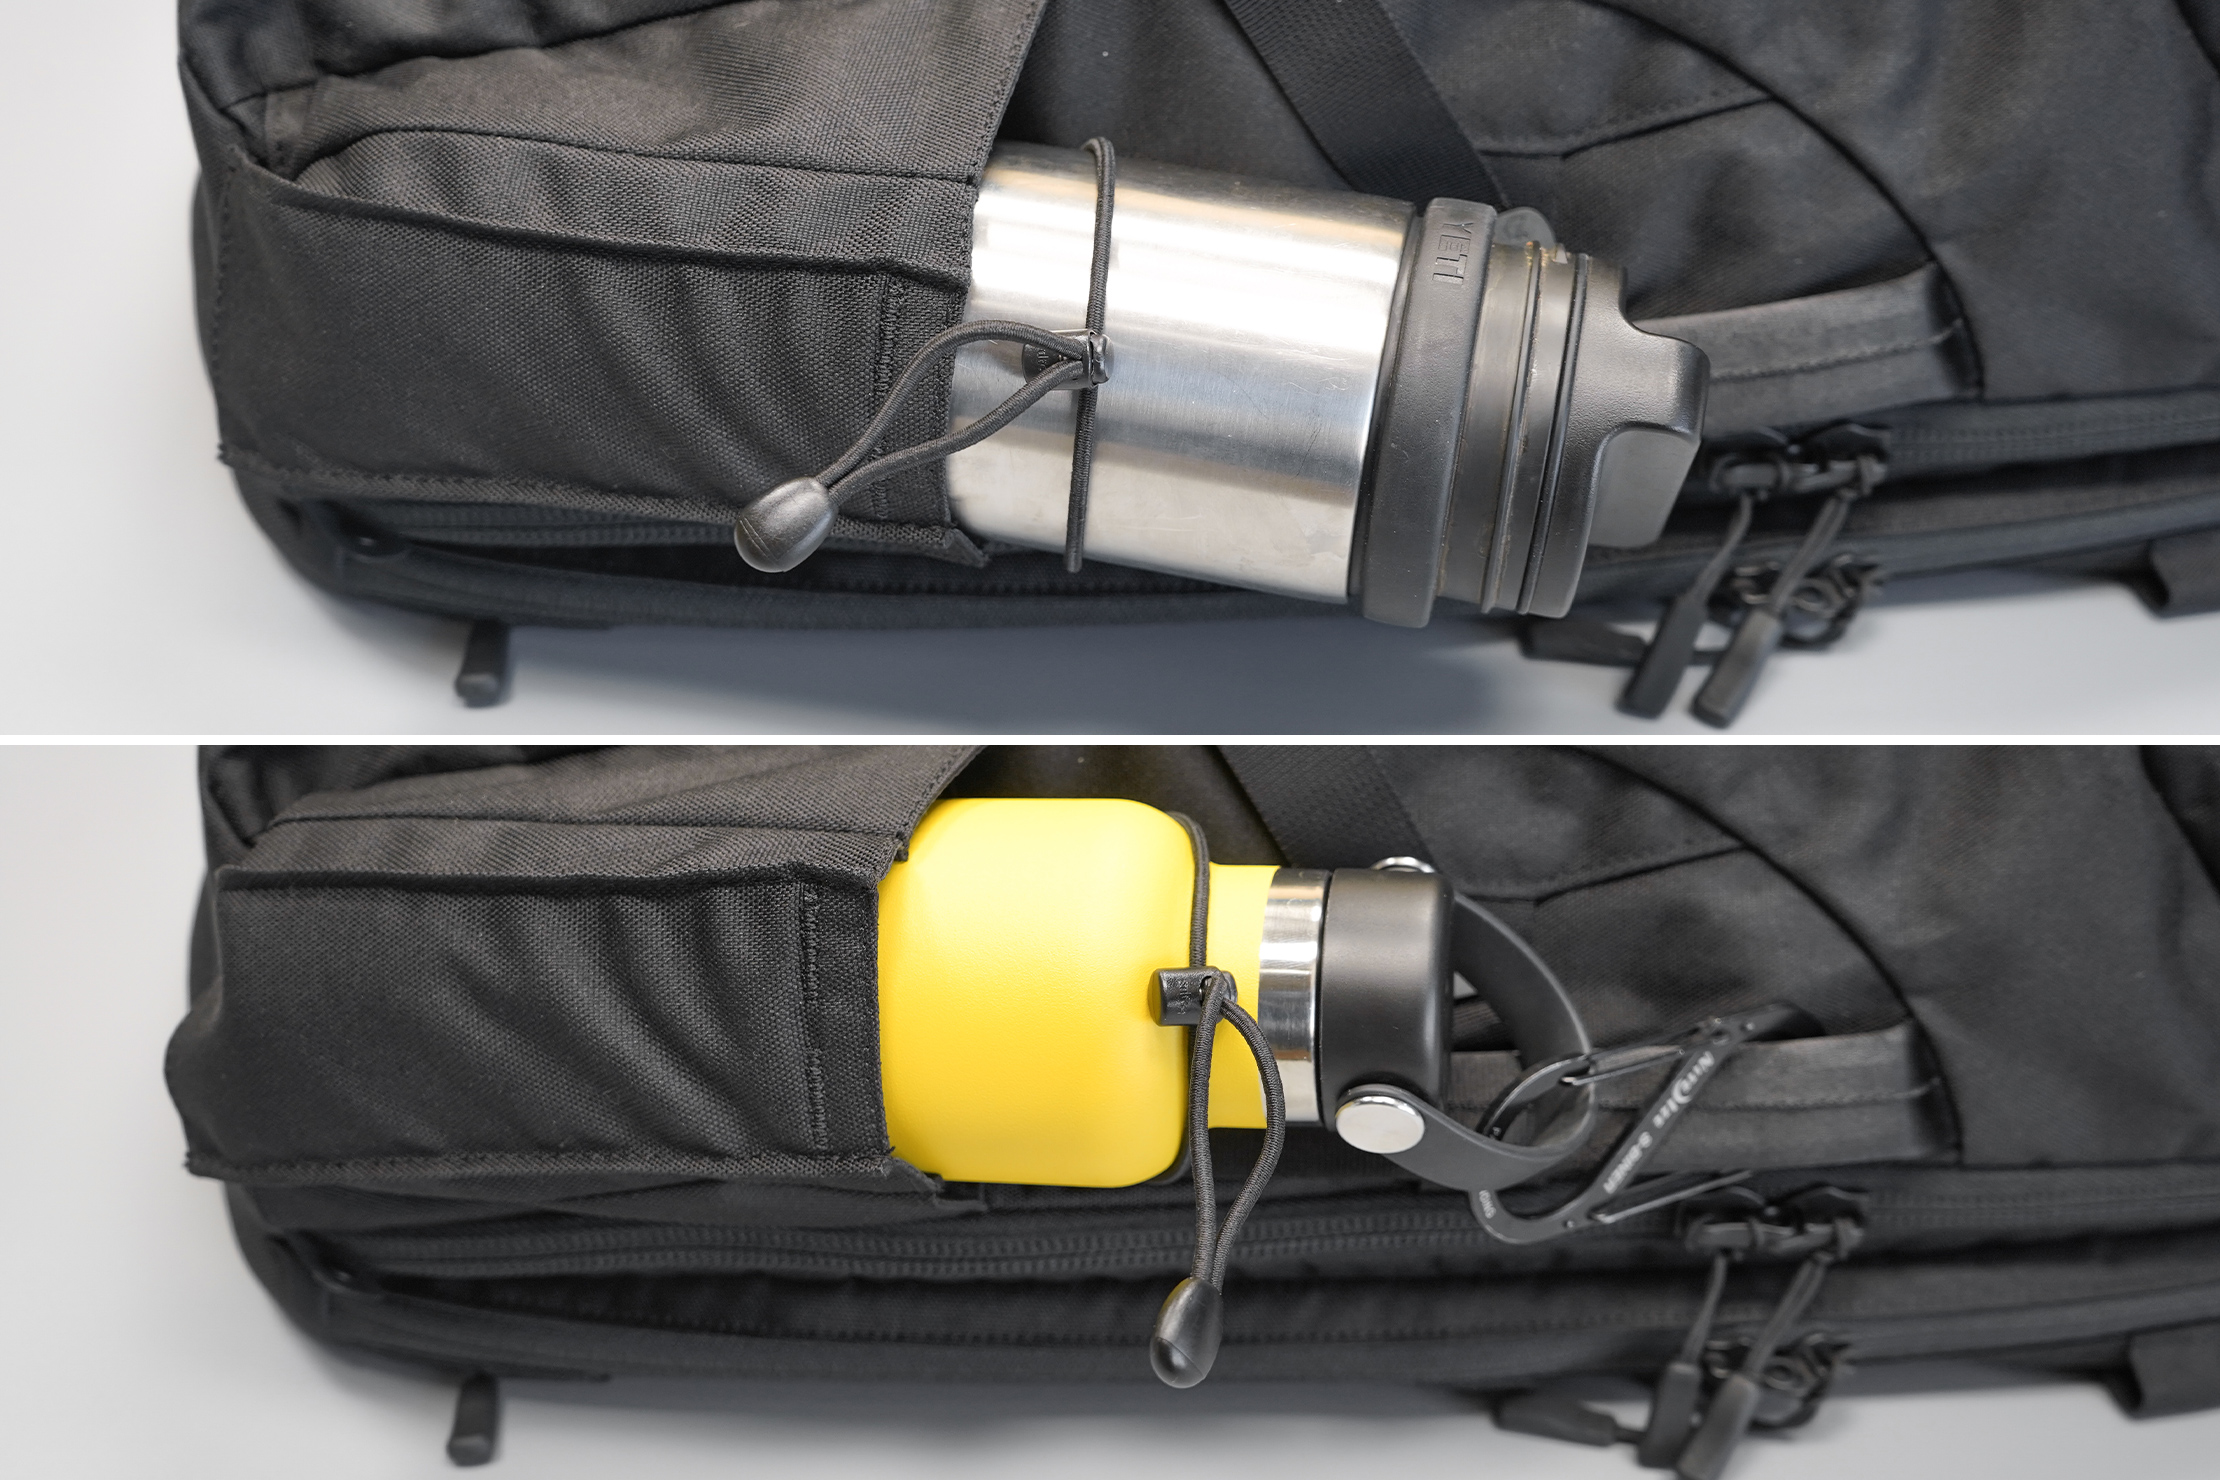 Minaal Carry-On 3.0   The bungee cord isn't up to the task, but a carabiner is